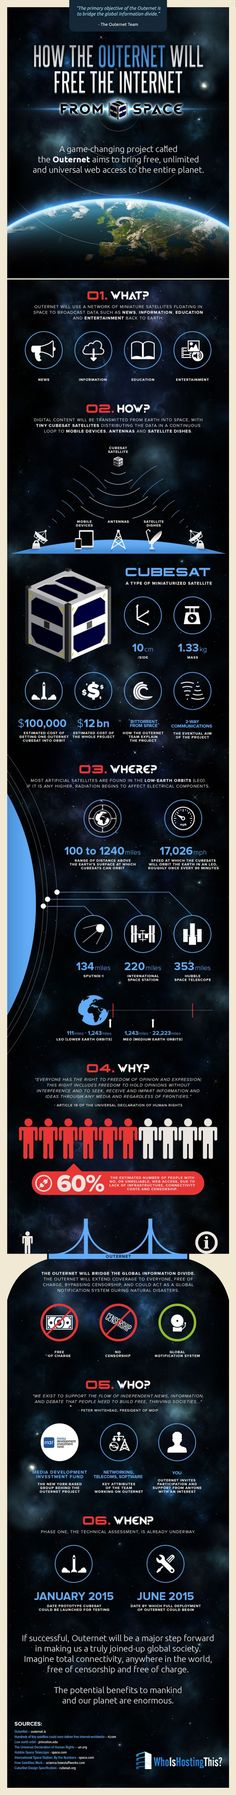 How The Outernet Will Free The Internet From Space [Infographic] - A game-changing project called the Outernet aims to bring free, unlimited and universal web access to the entire planet. Computer Technology, Technology Gadgets, Tech Gadgets, Computer Science, Science And Technology, Technology Innovations, Data Mining, Web Design, To Infinity And Beyond